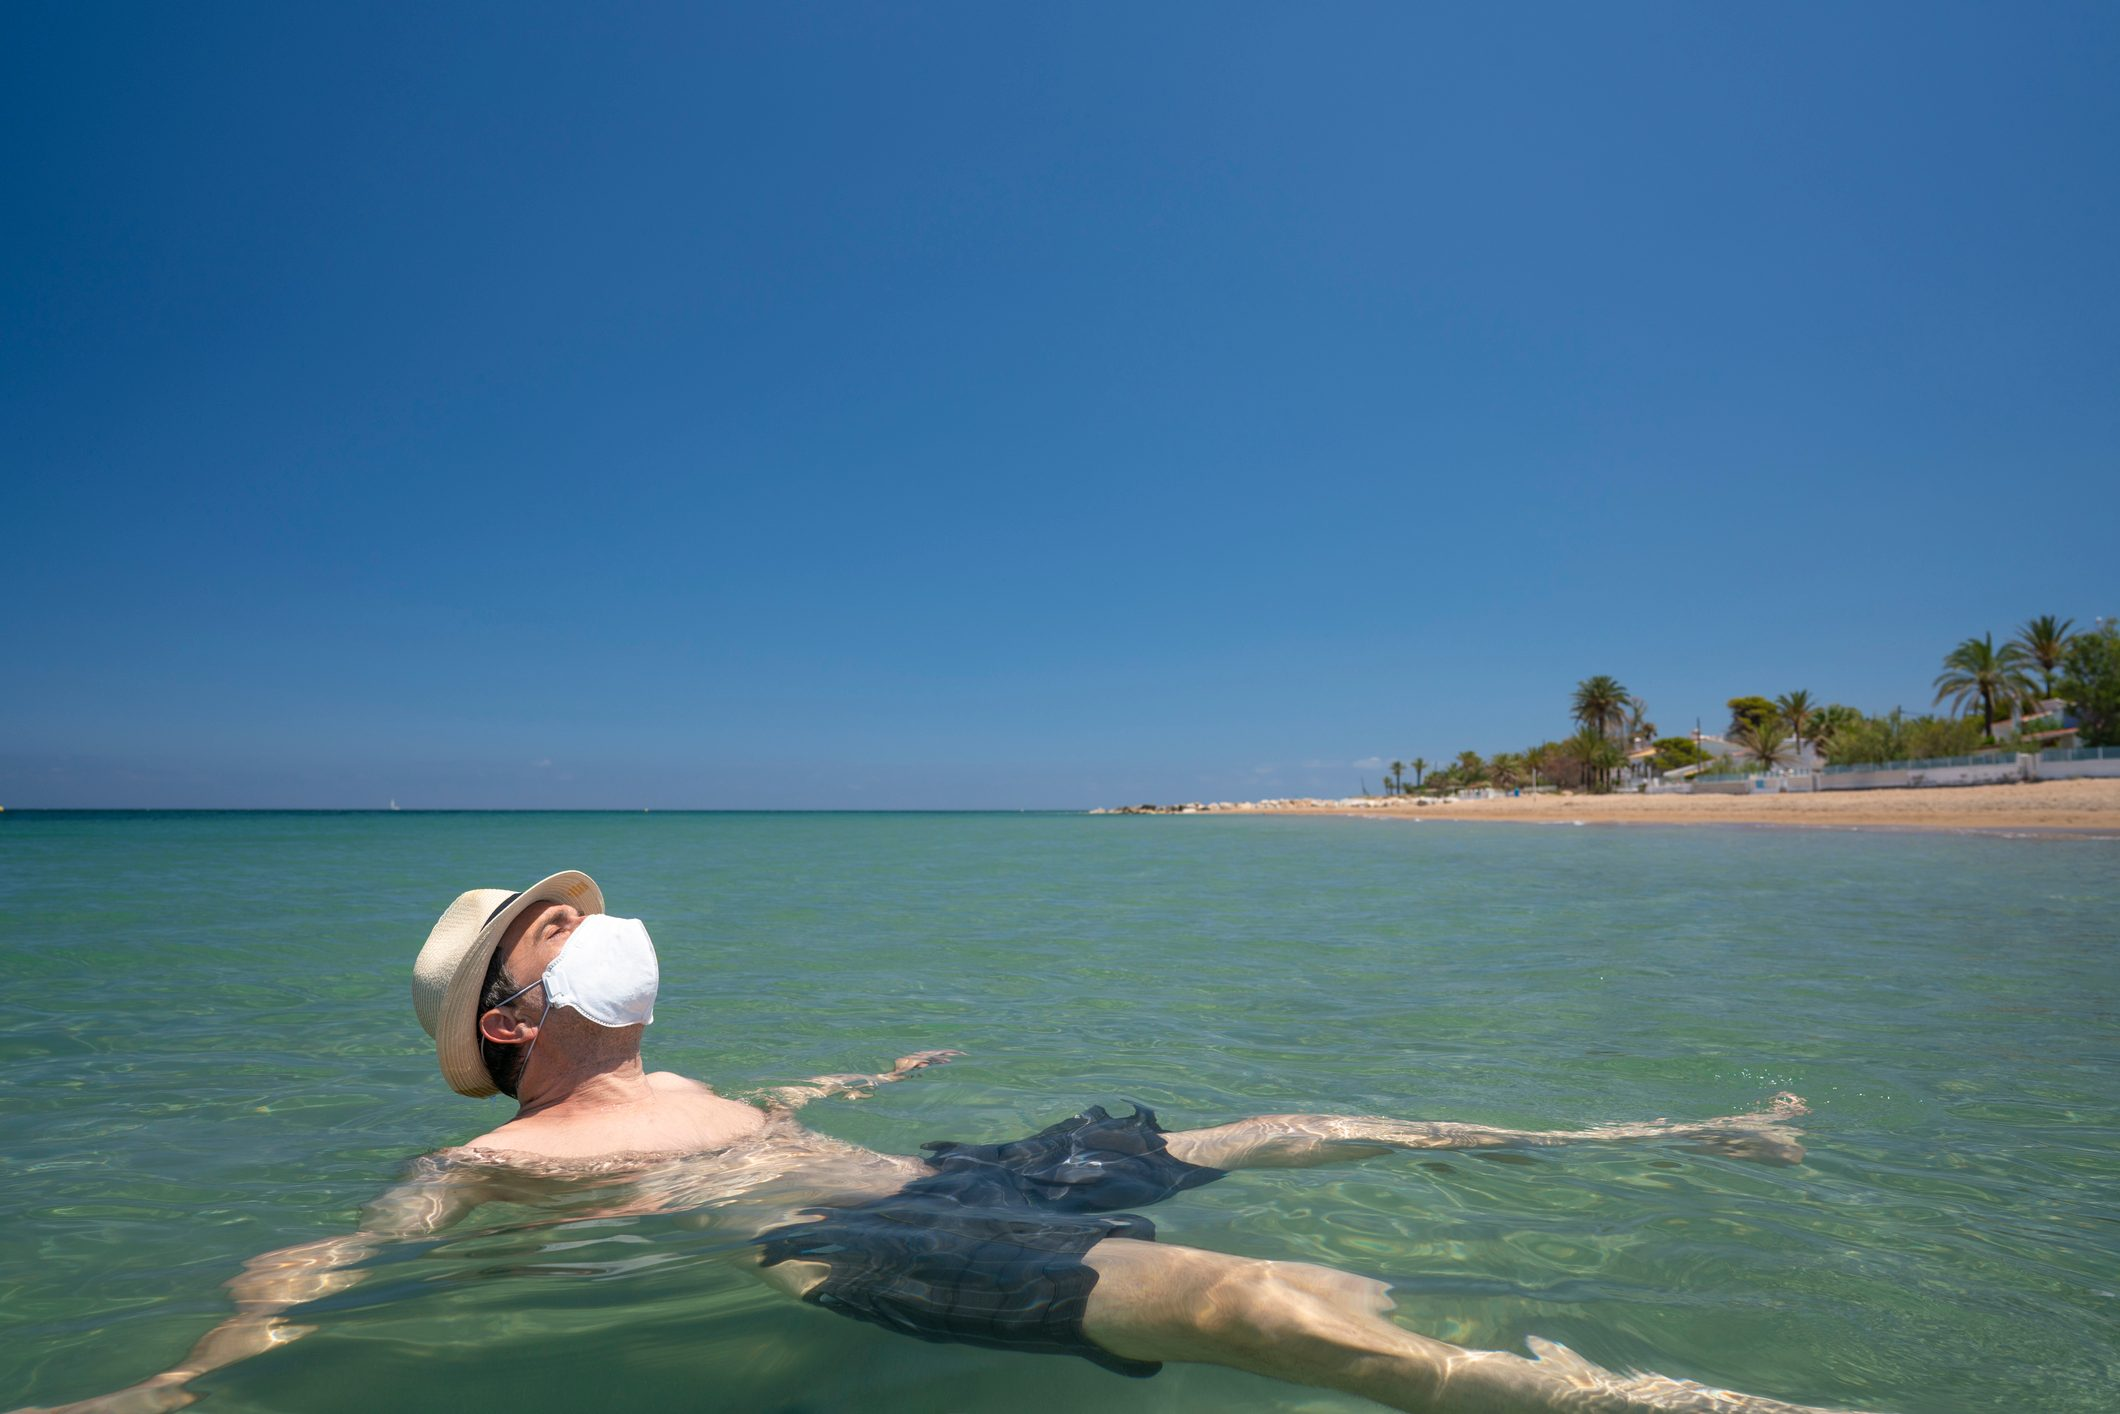 Adult turist man with N95 face mask in covid-19 on the beach